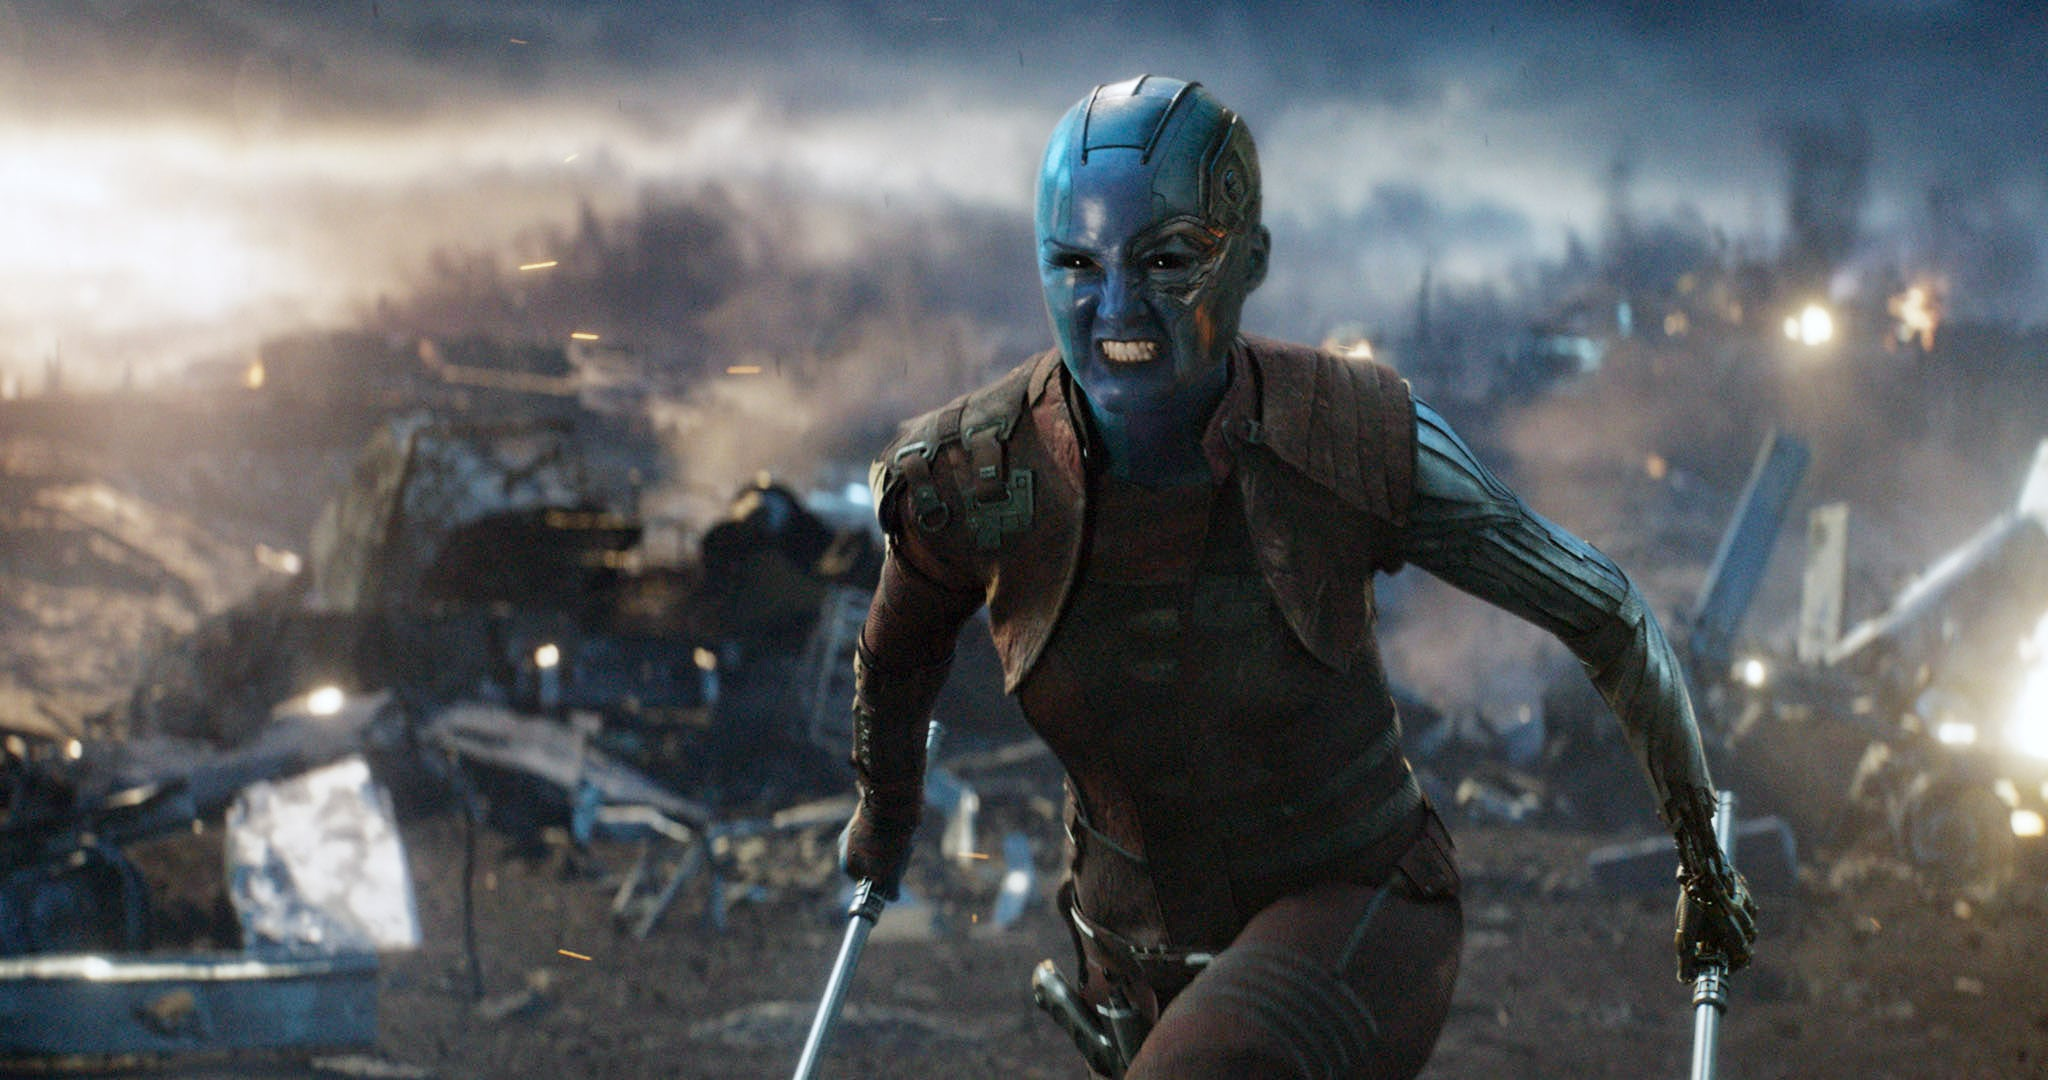 AVENGERS: ENDGAME, (aka AVENGERS 4), Karen Gillan as Nebula, 2019.  Walt Disney Studios Motion Pictures /  Marvel Studios / courtesy Everett Collection